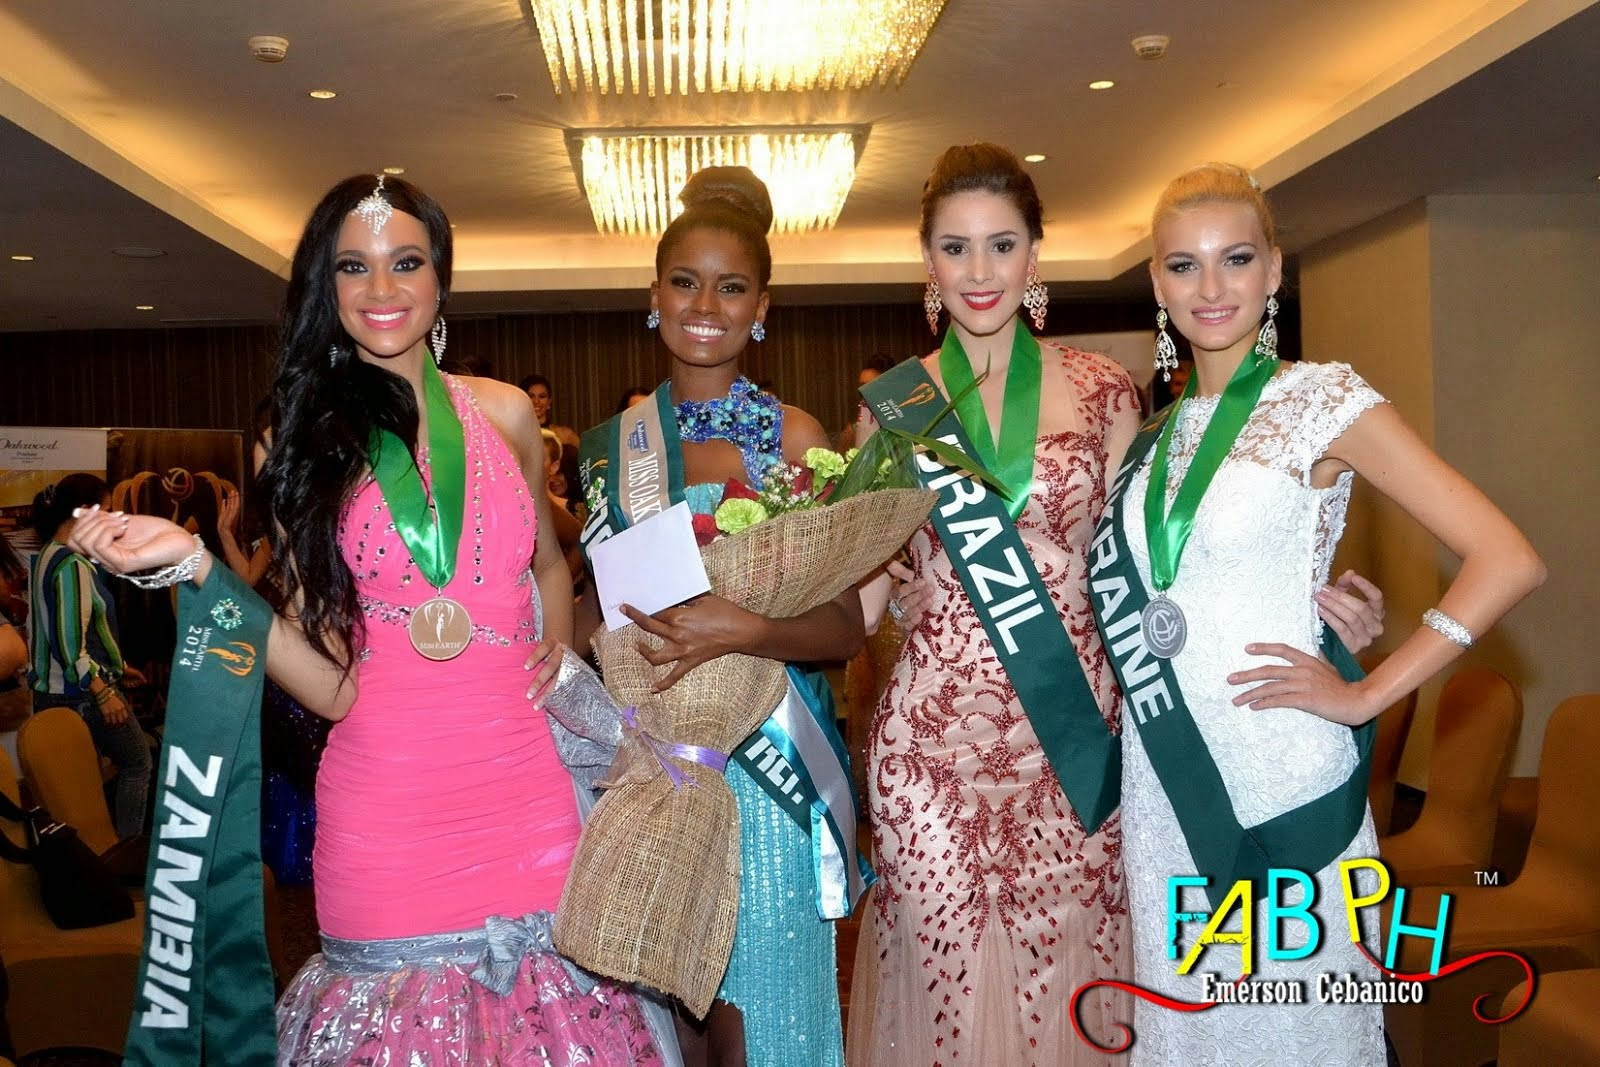 Miss Earth 2014 Evening Gown Competition Group 02